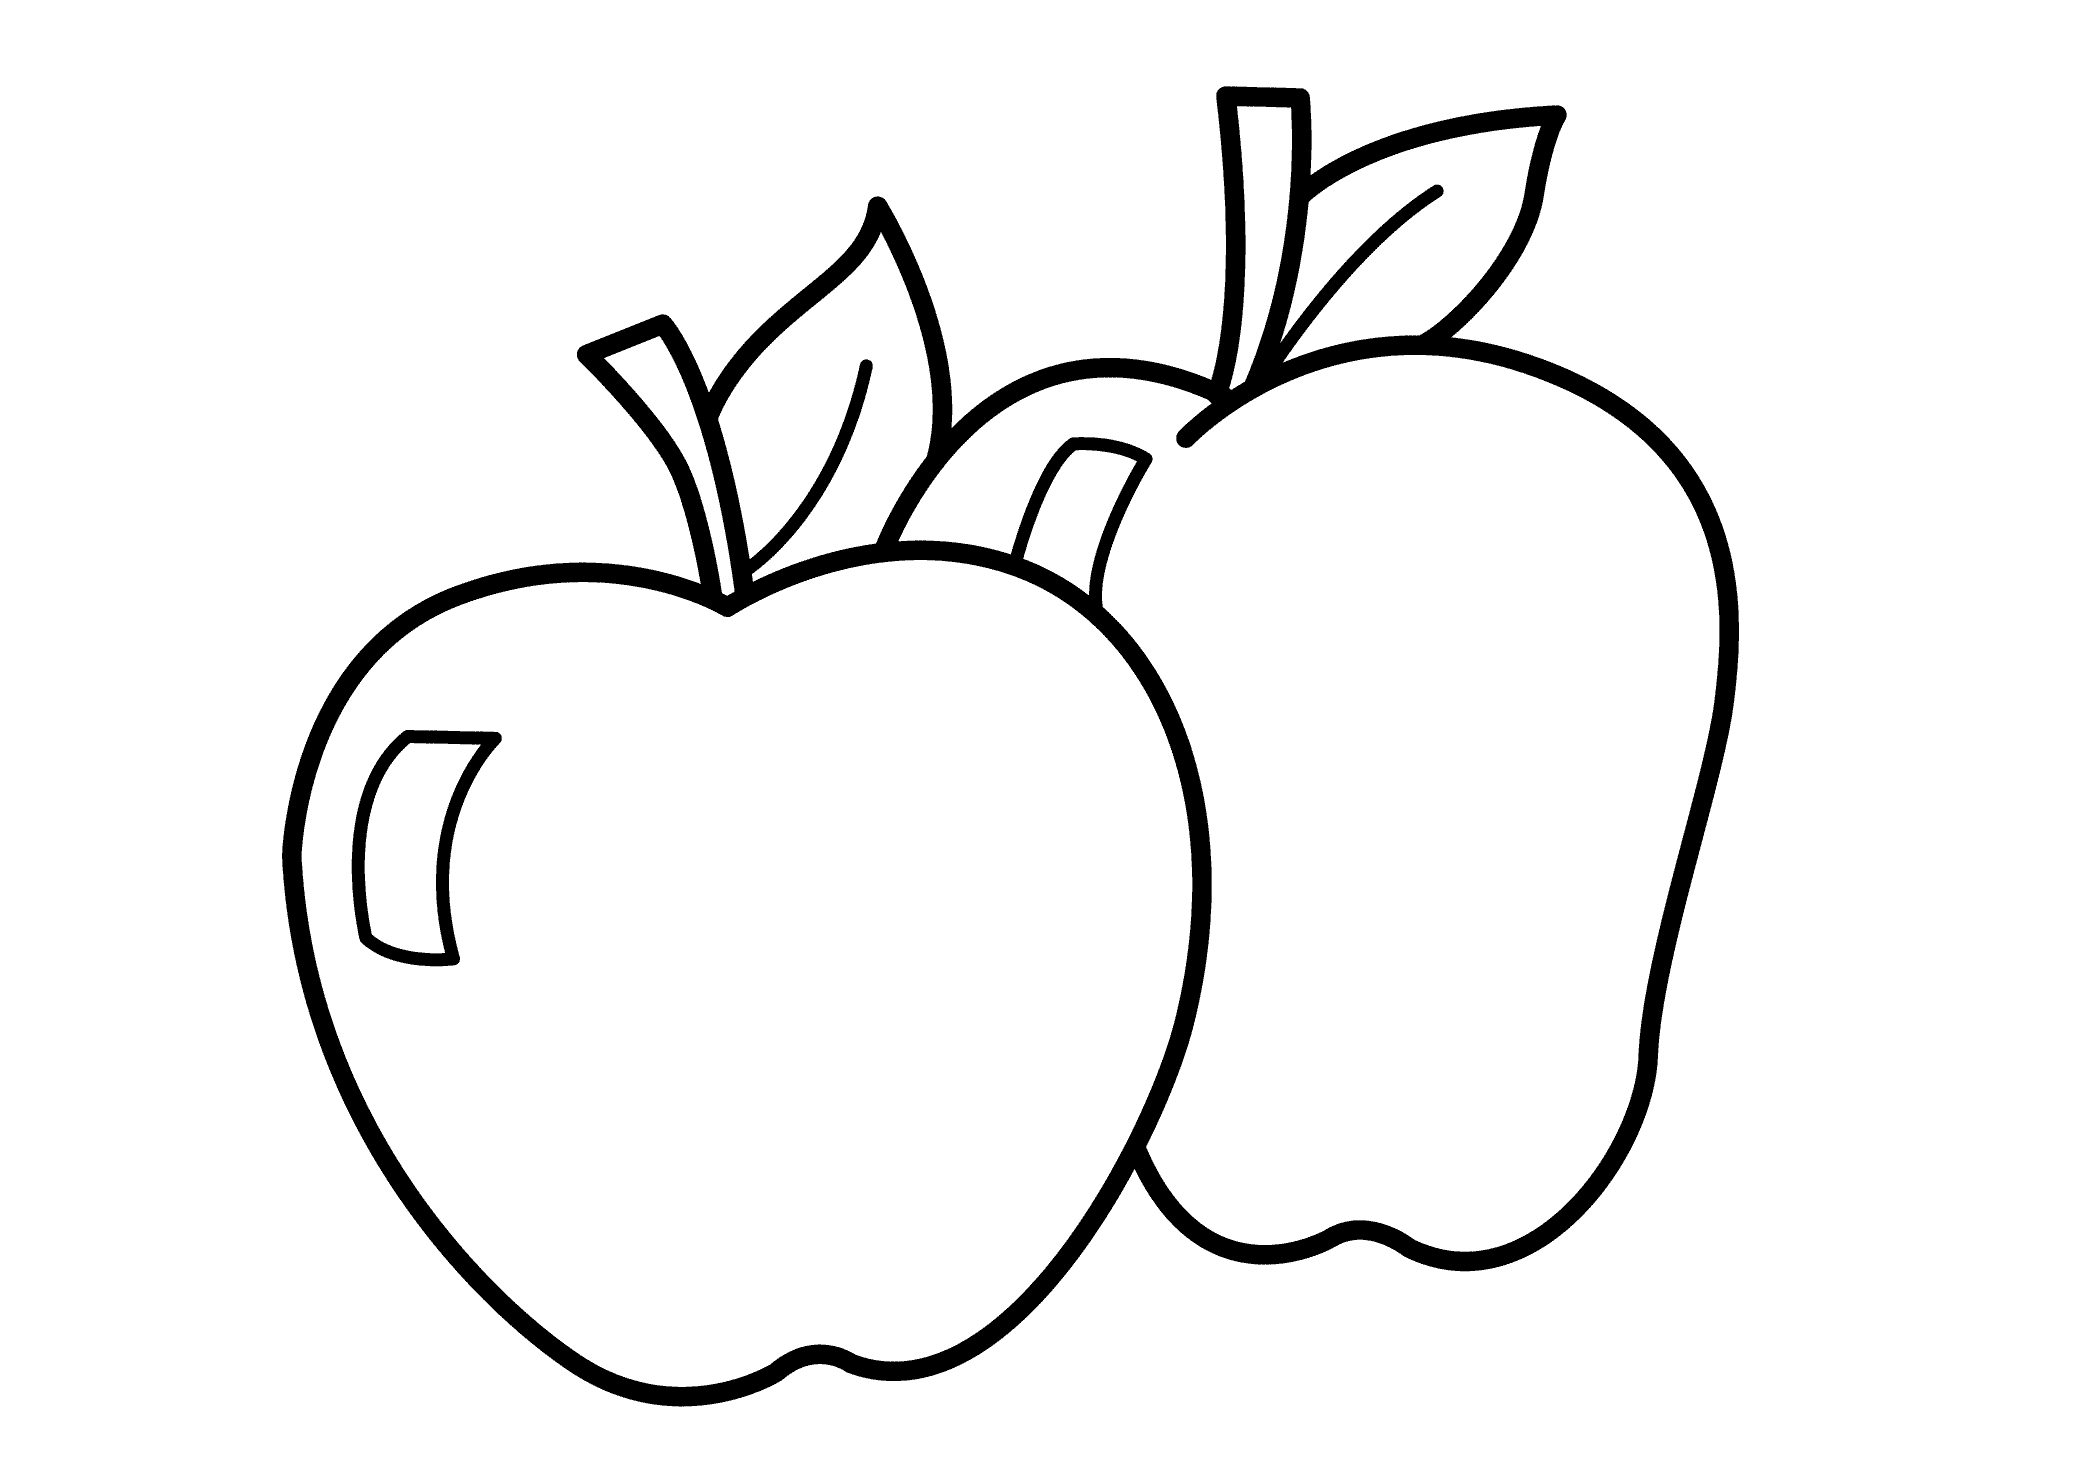 coloring image of an apple green apple coloring page free printable coloring pages an image apple of coloring